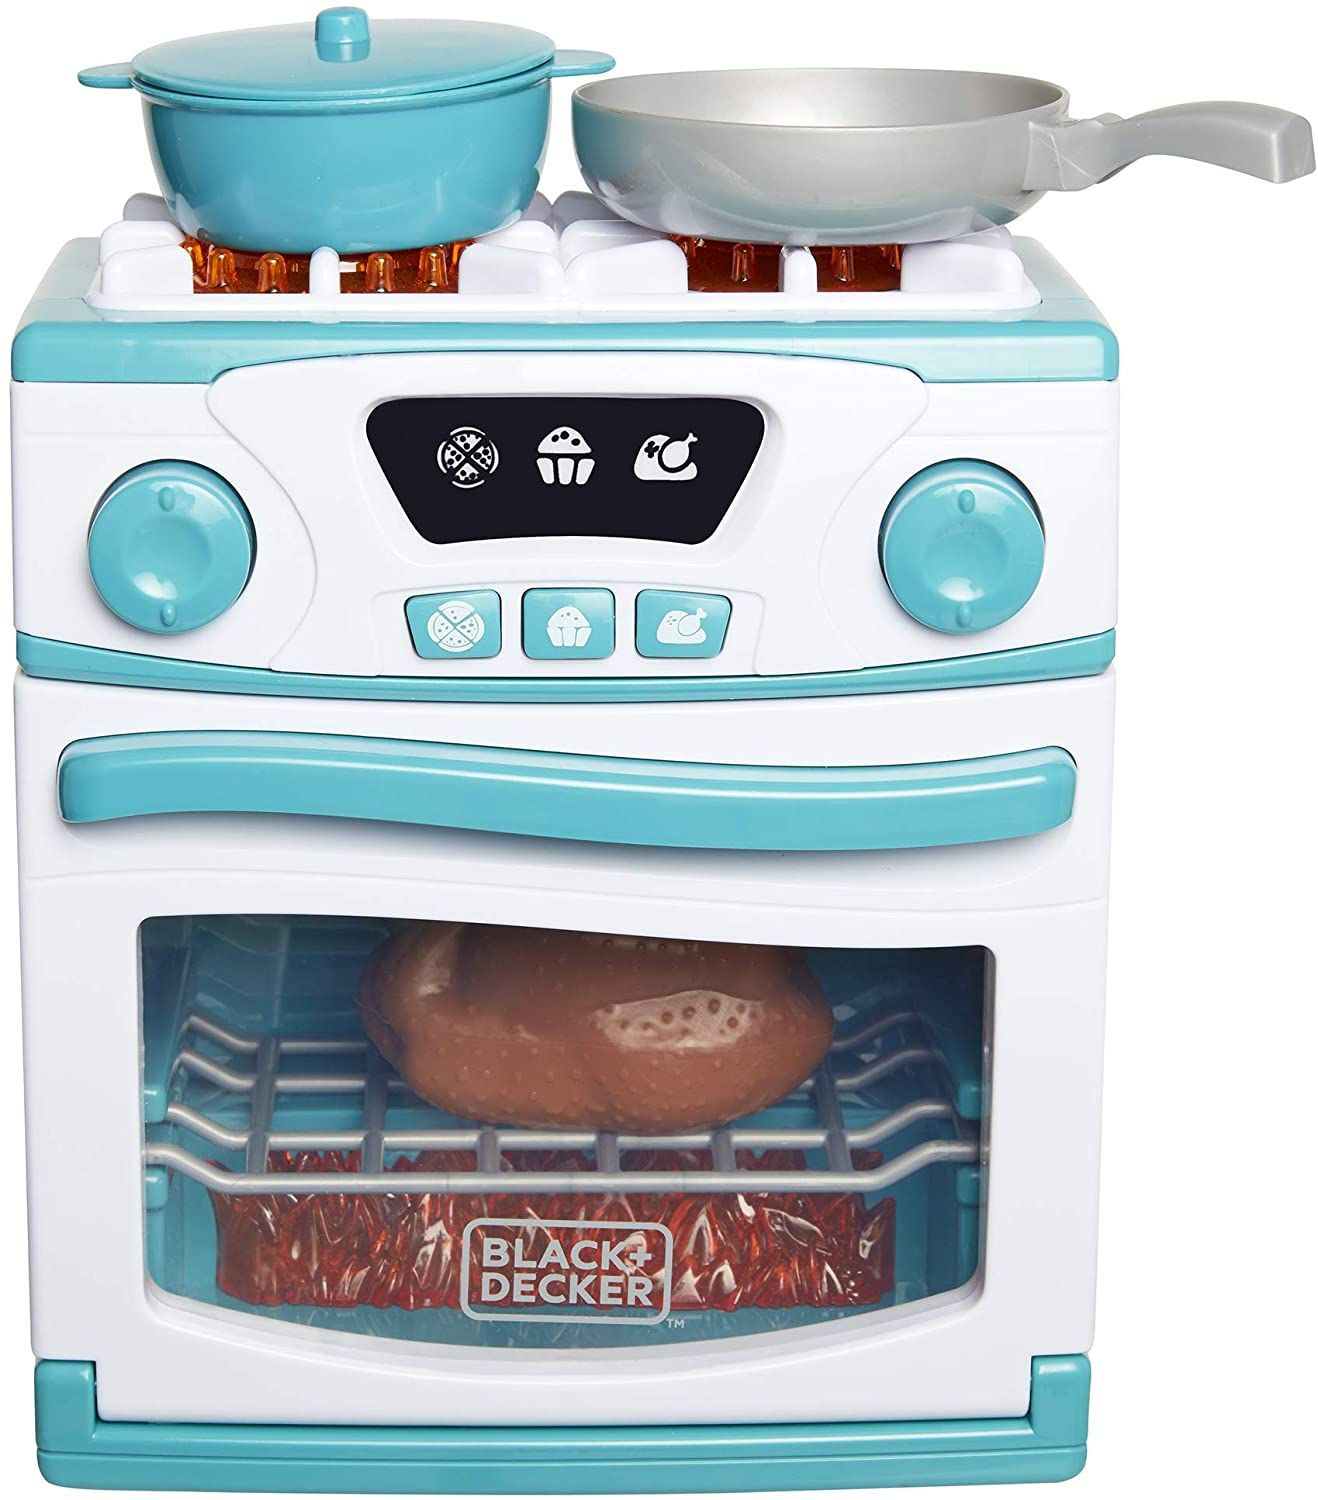 BLACK+DECKER Junior Oven and Stove Role Play Pretend Kitchen Appliance for Kids with Realistic Action, Lights and Sounds - Plus Pot with Lid, Cooking Pan, Play Chicken and Bacon/Egg Food